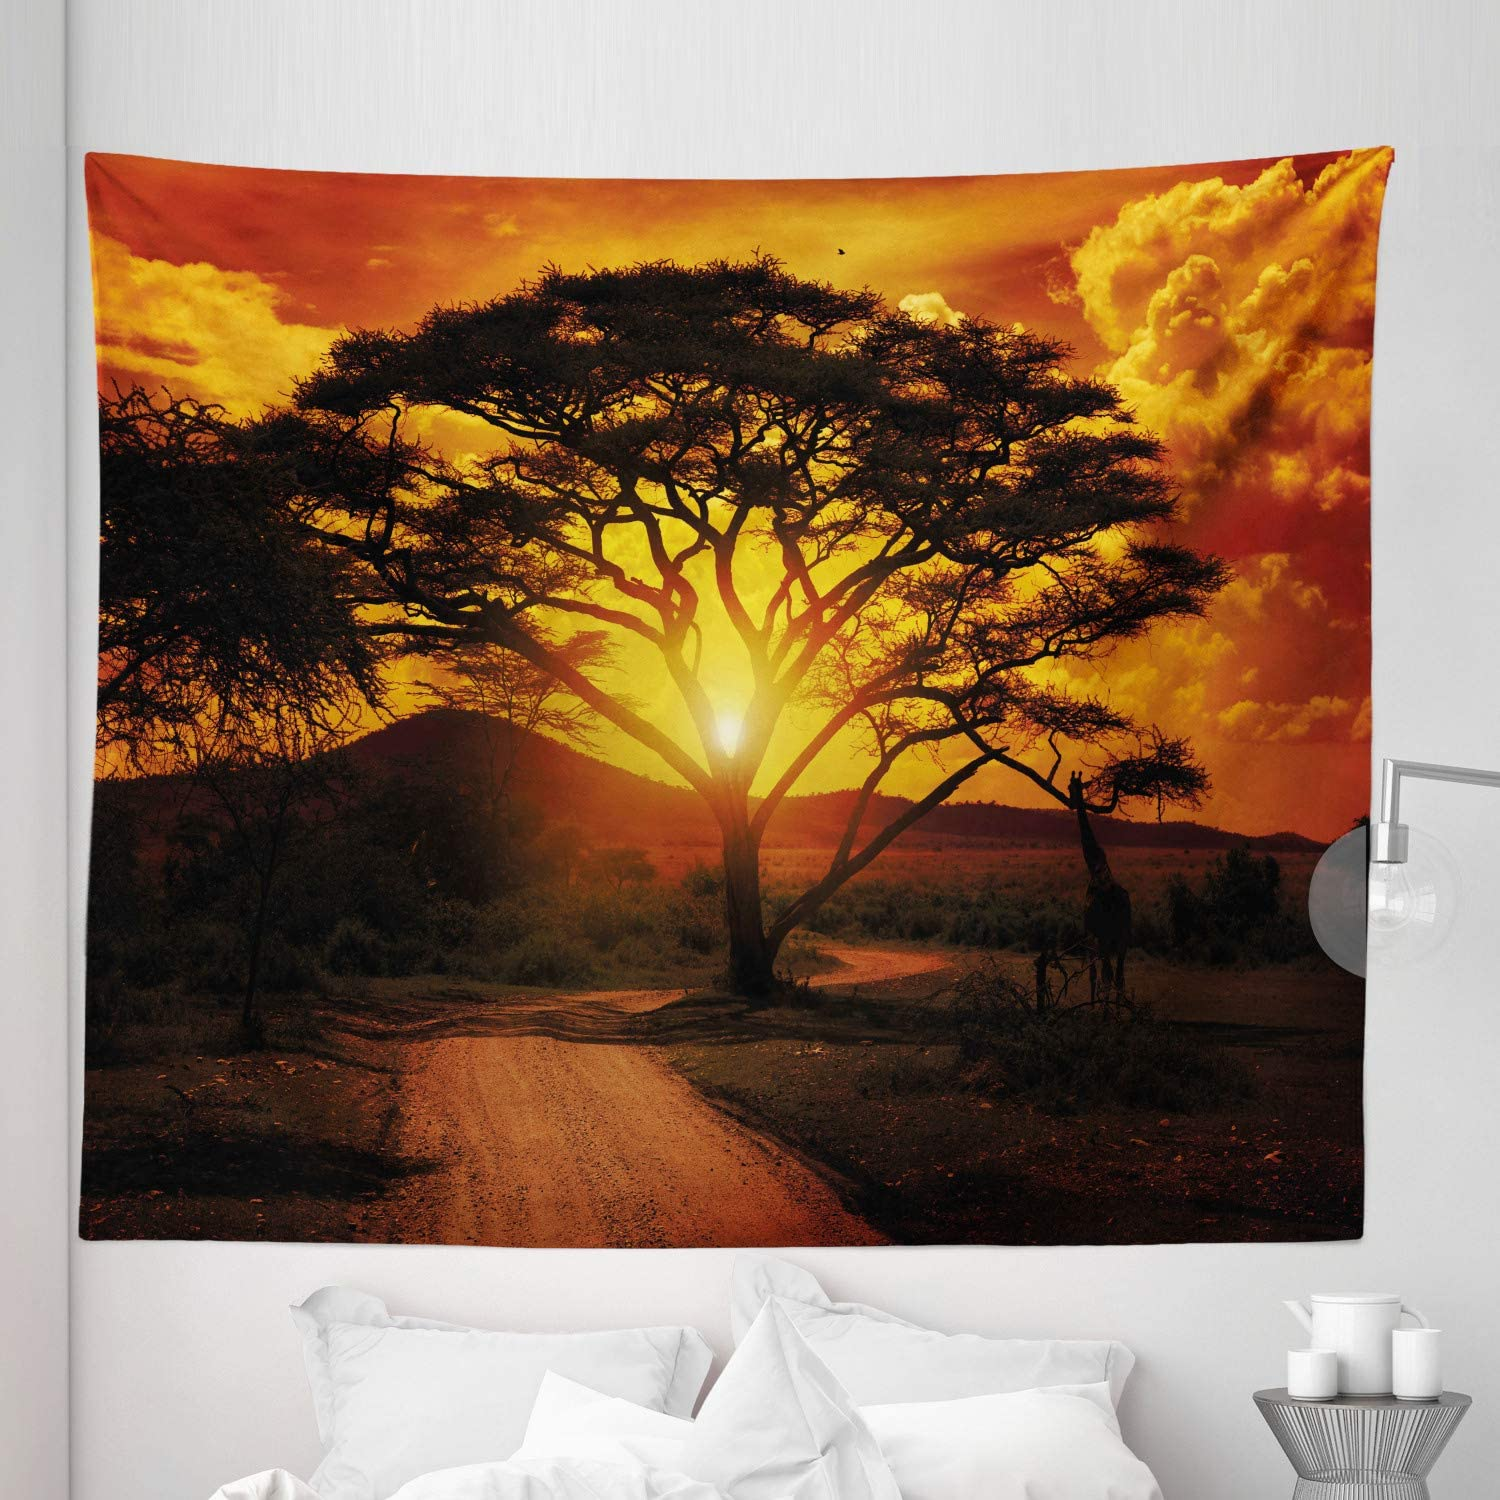 """Lunarable Sunset Tapestry King Size, Majestic Tree with Horizon Background Mystic Nature Dramatic Landscape, Wall Hanging Bedspread Bed Cover Wall Decor, 104"""" X 88"""", Orange Black"""